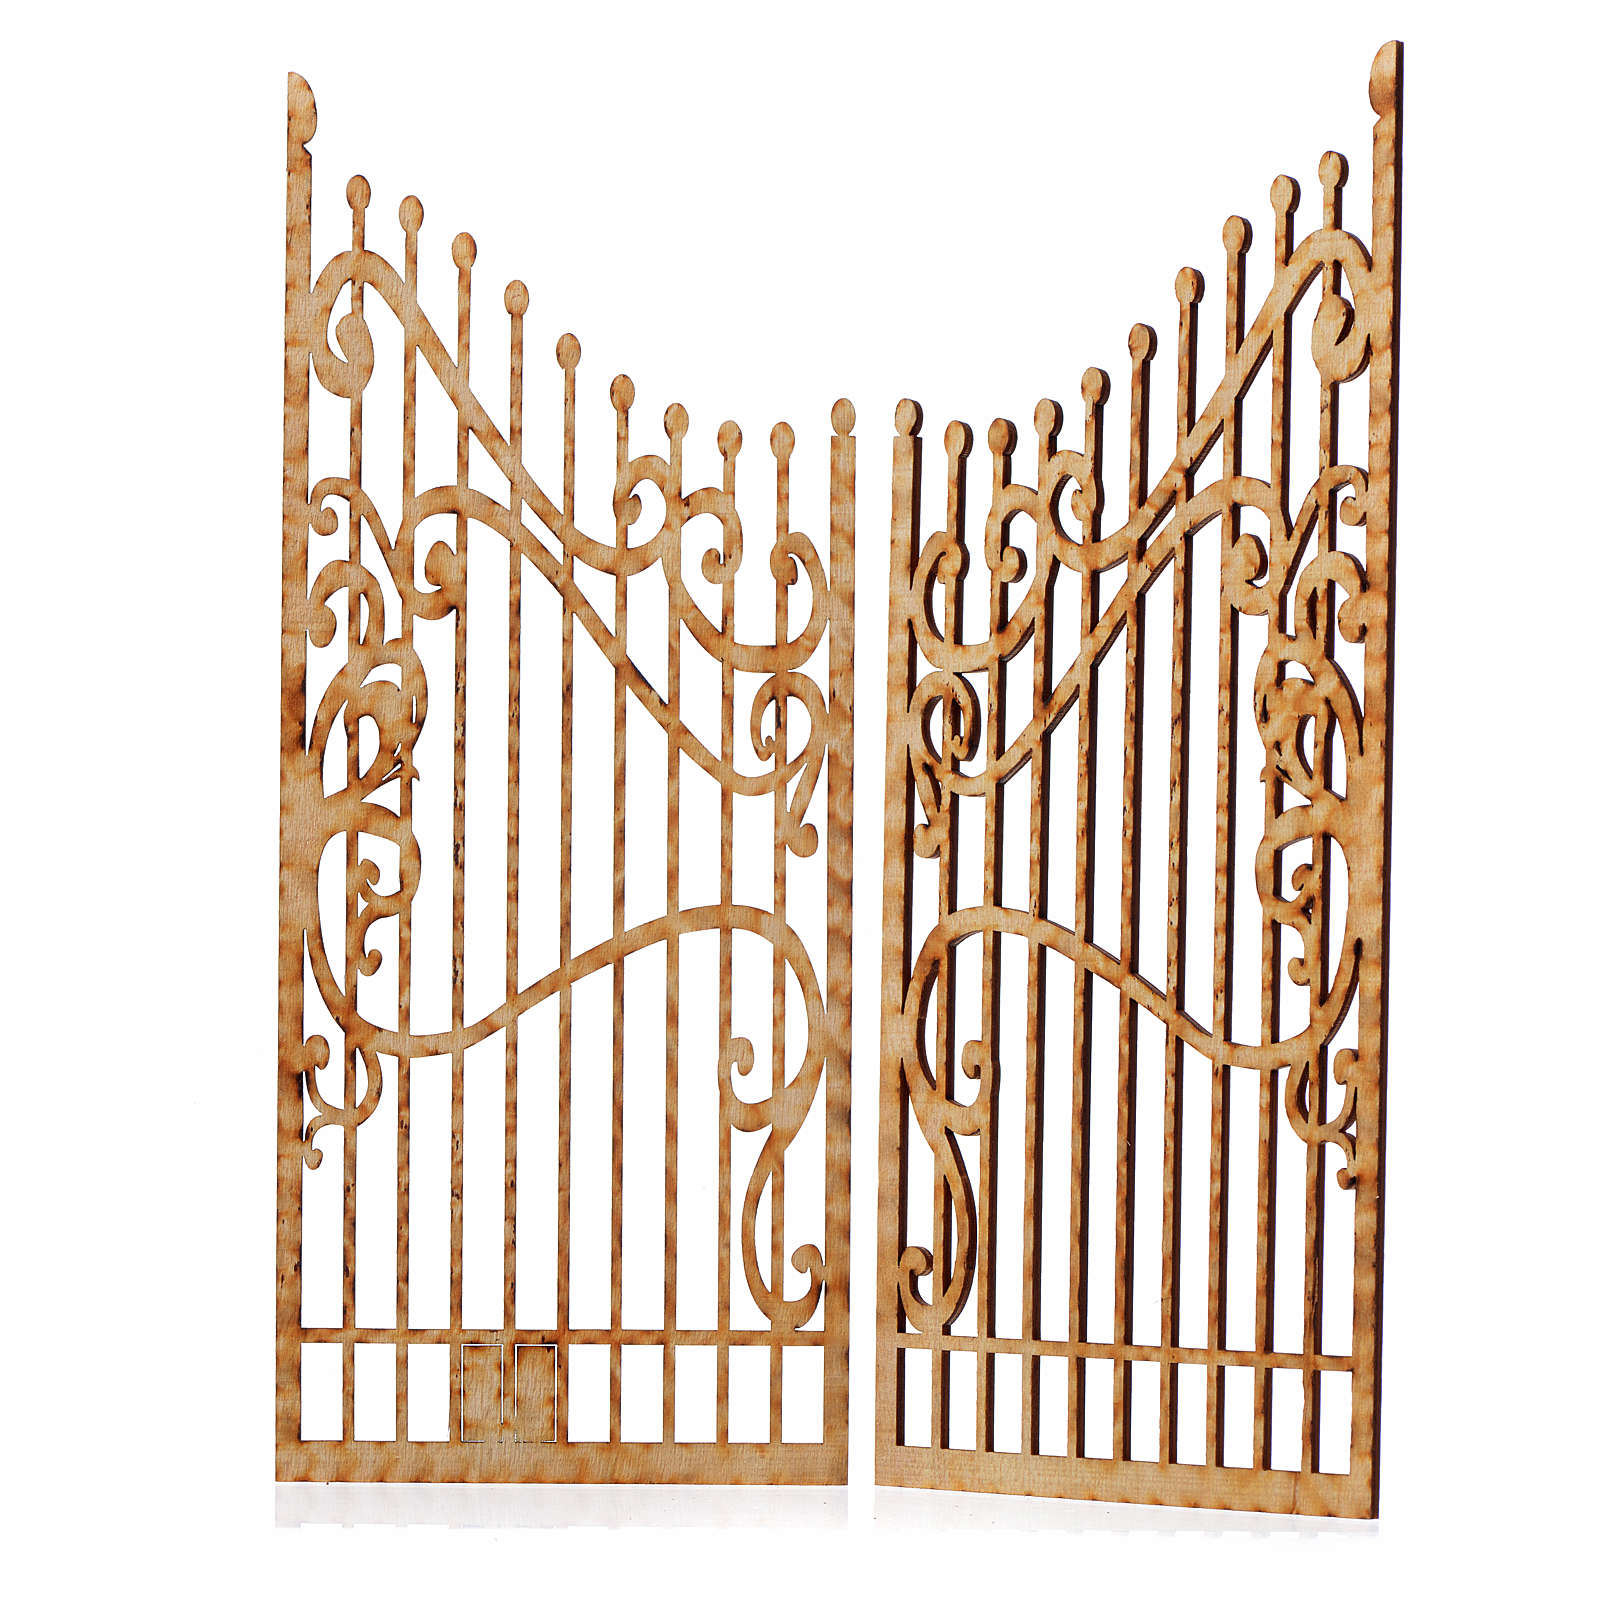 Nativity accessory, wooden gate with 2 doors, 25x20cm 4